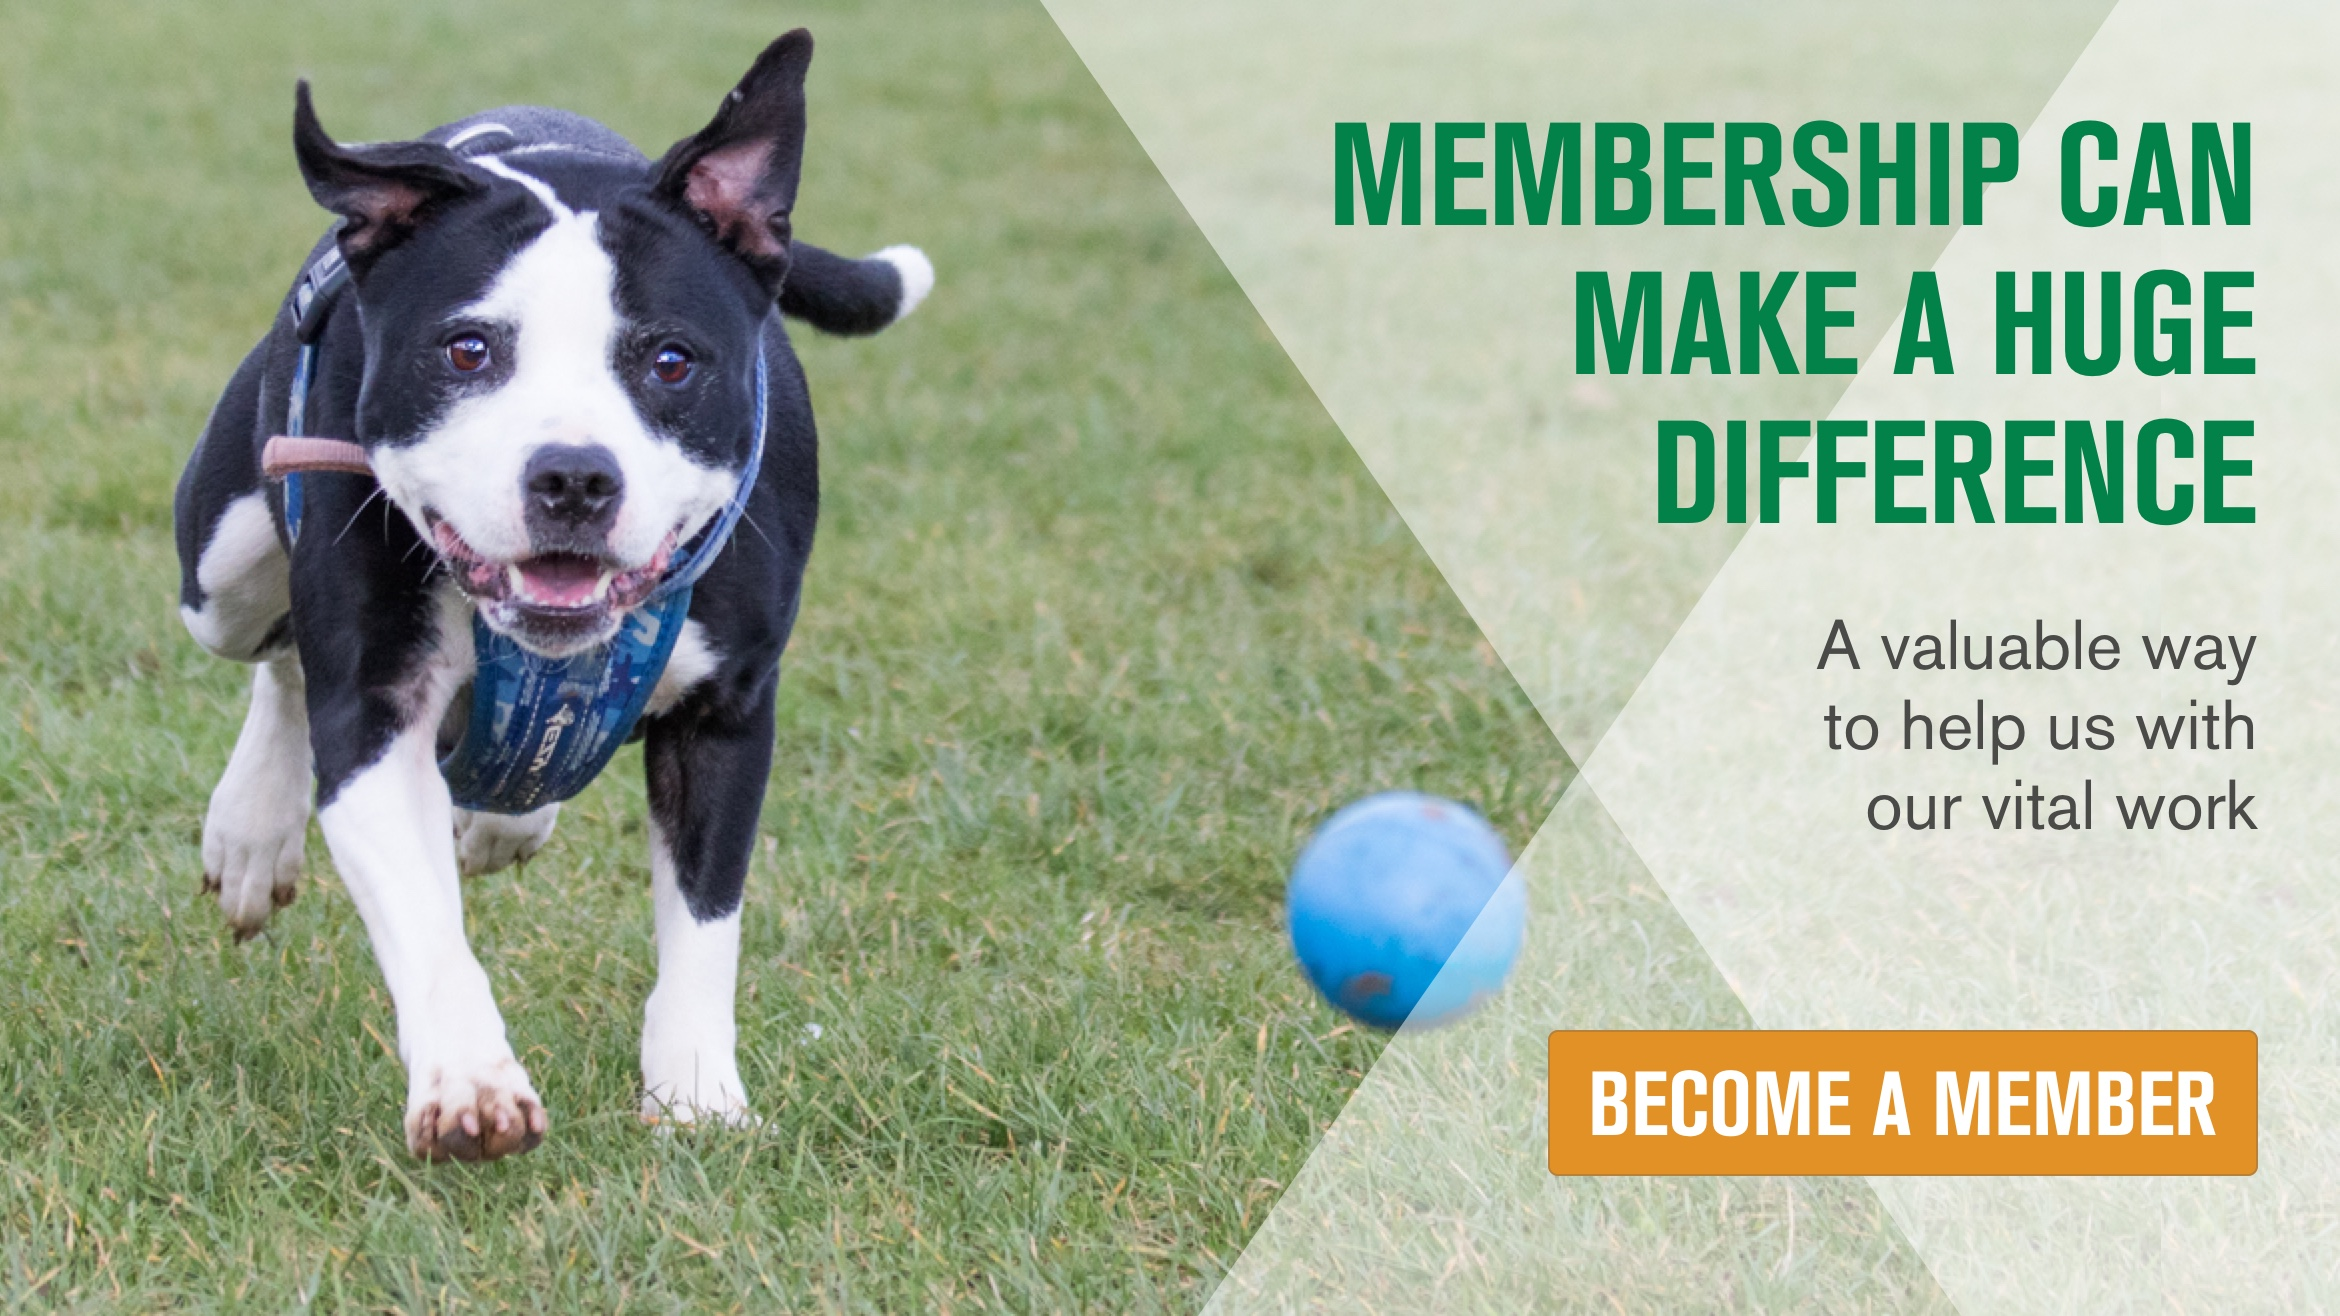 See the huge number of ways your membership could make a difference